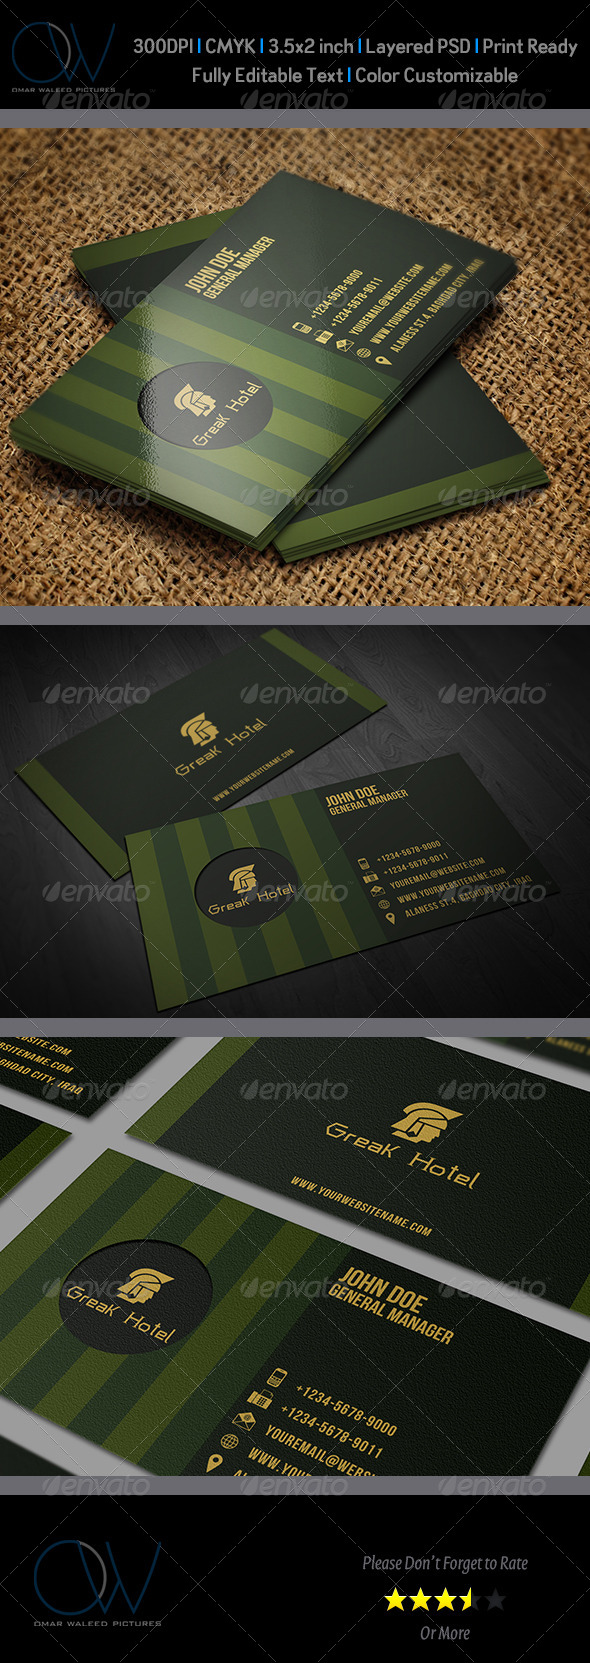 Greek Hotel Business Card Template - Creative Business Cards